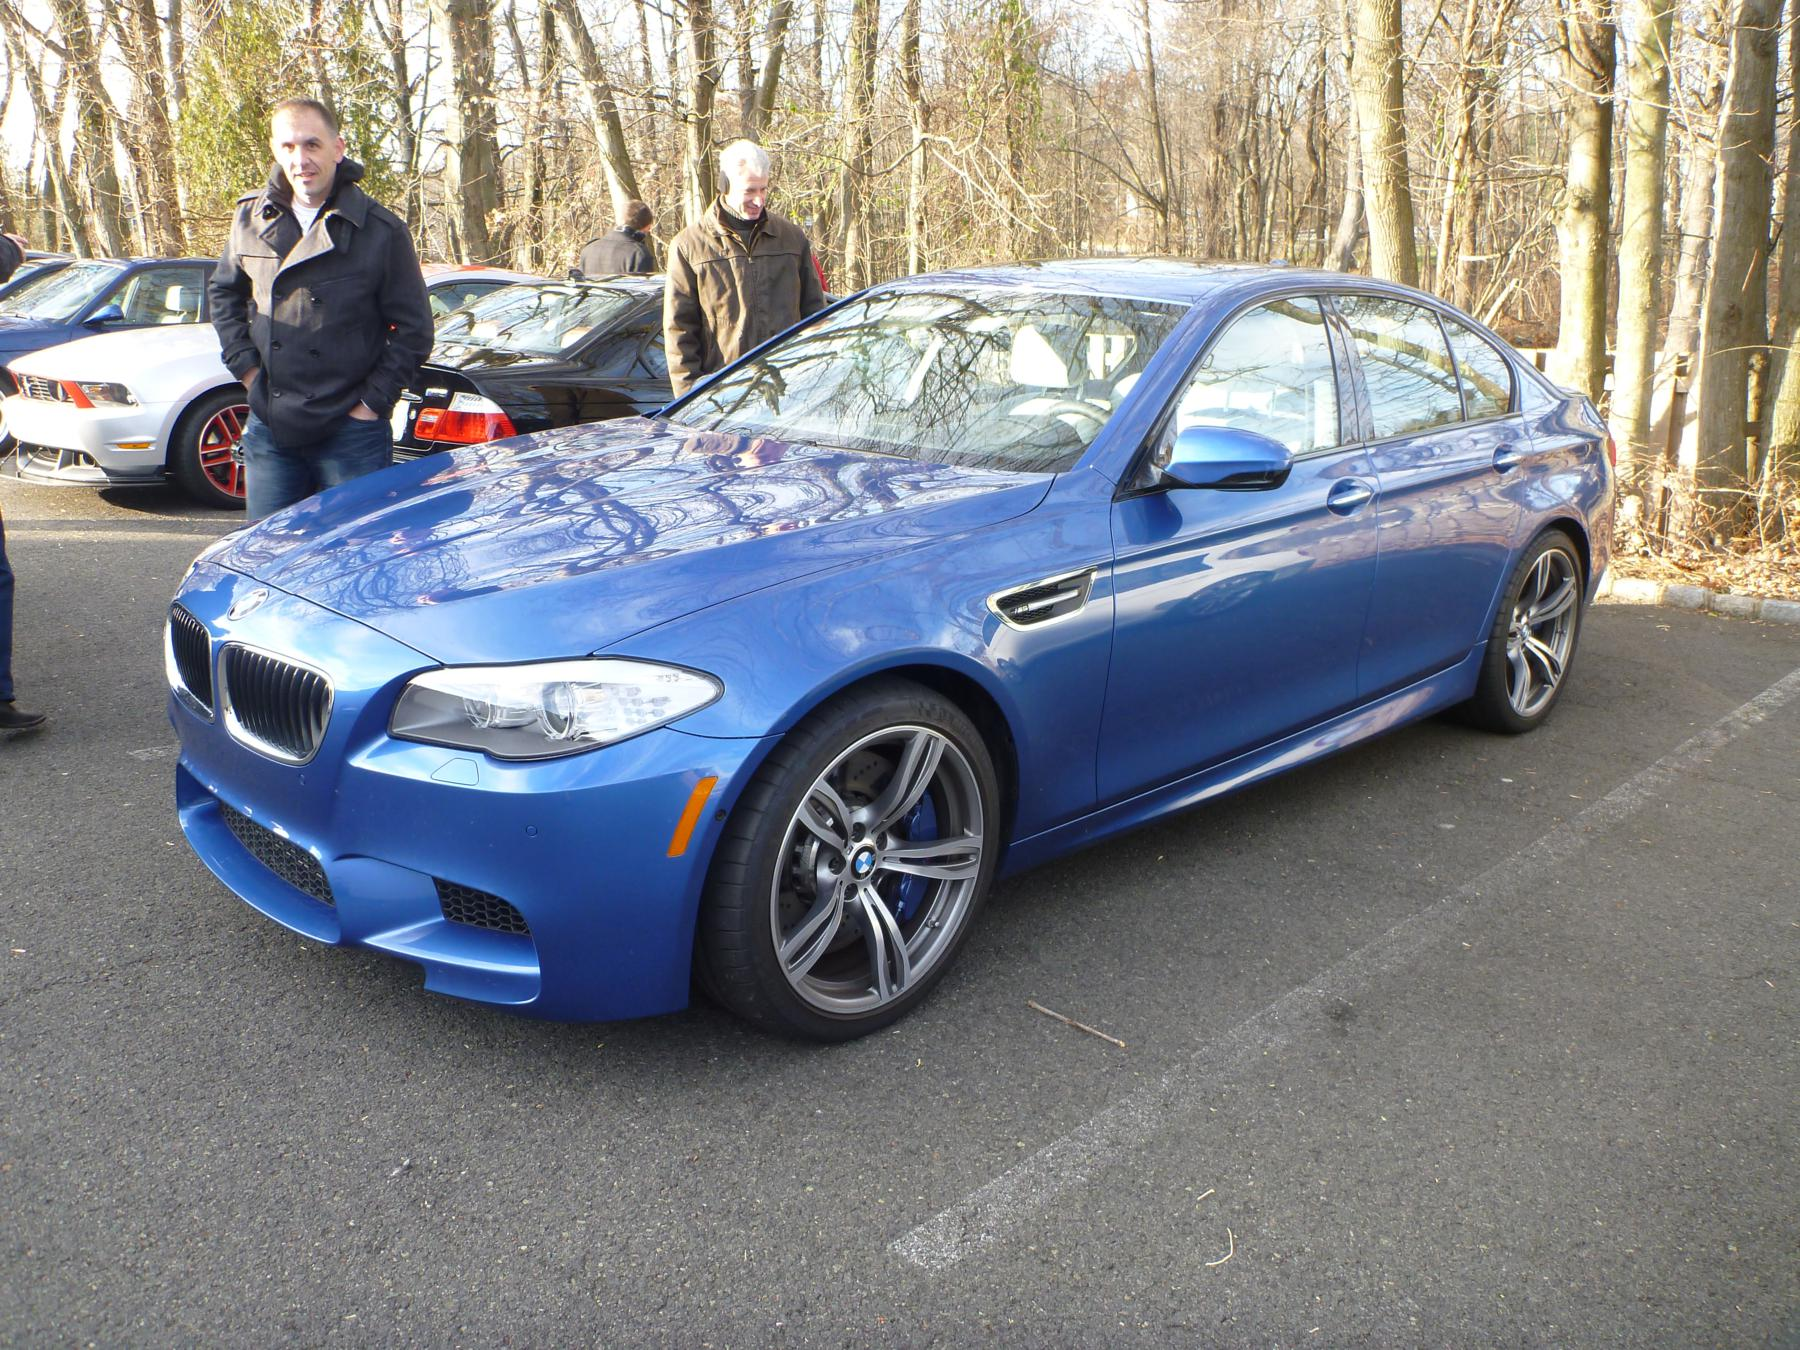 F10 M5 at NJ Cars and Coffee - 12/18/2011-12-18-2011-003_1800x1350.jpg